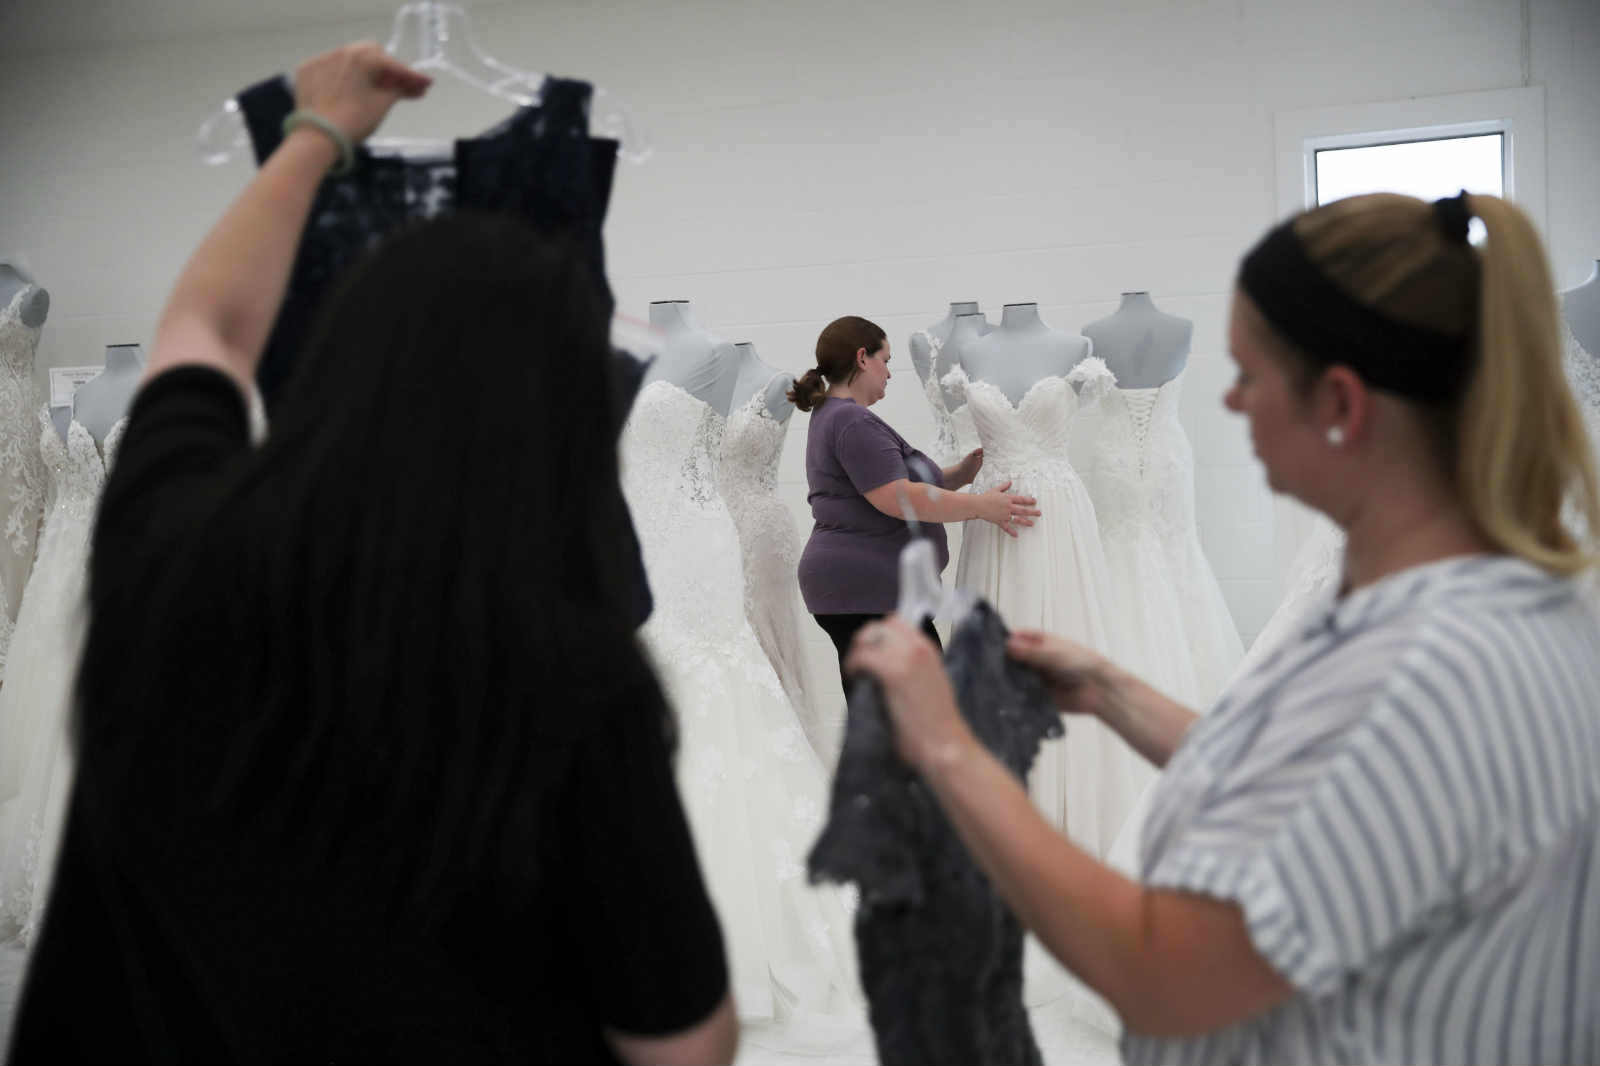 Workers settle bridal and prom dresses for display at U.S. brand Mon Cheri